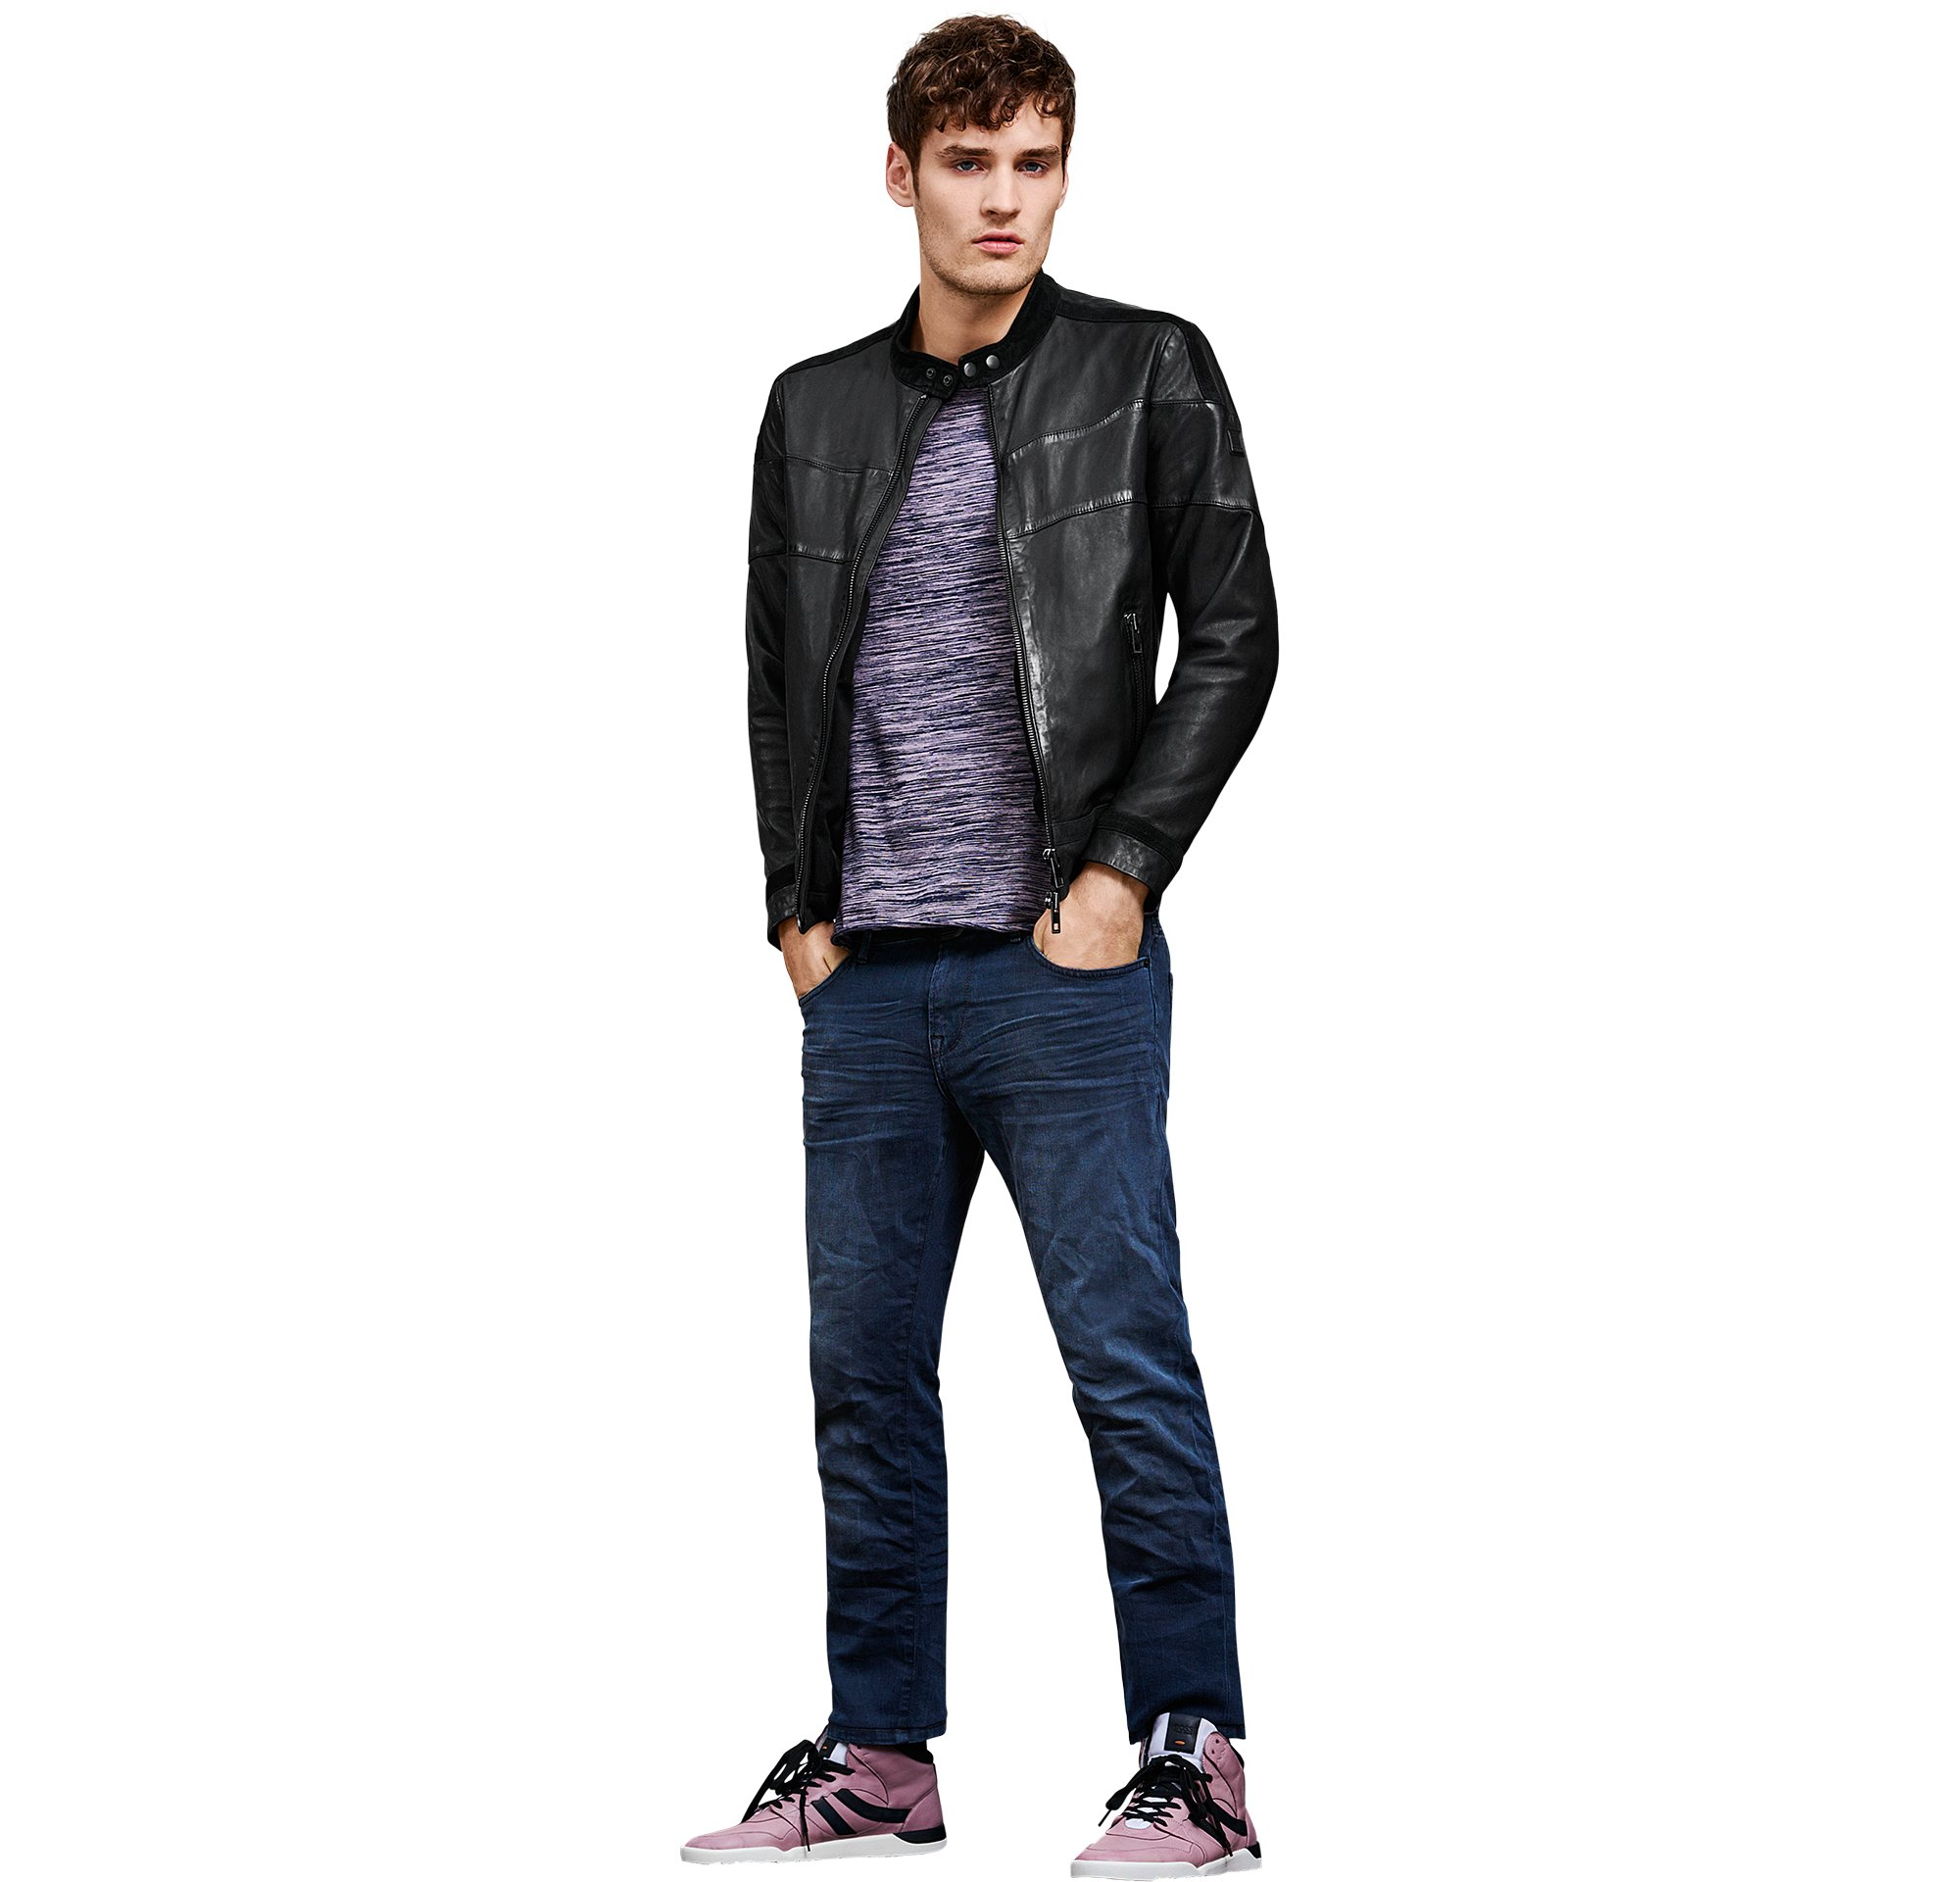 Leather jacket, shirt, jeans and shoes by BOSS Orange Menswear